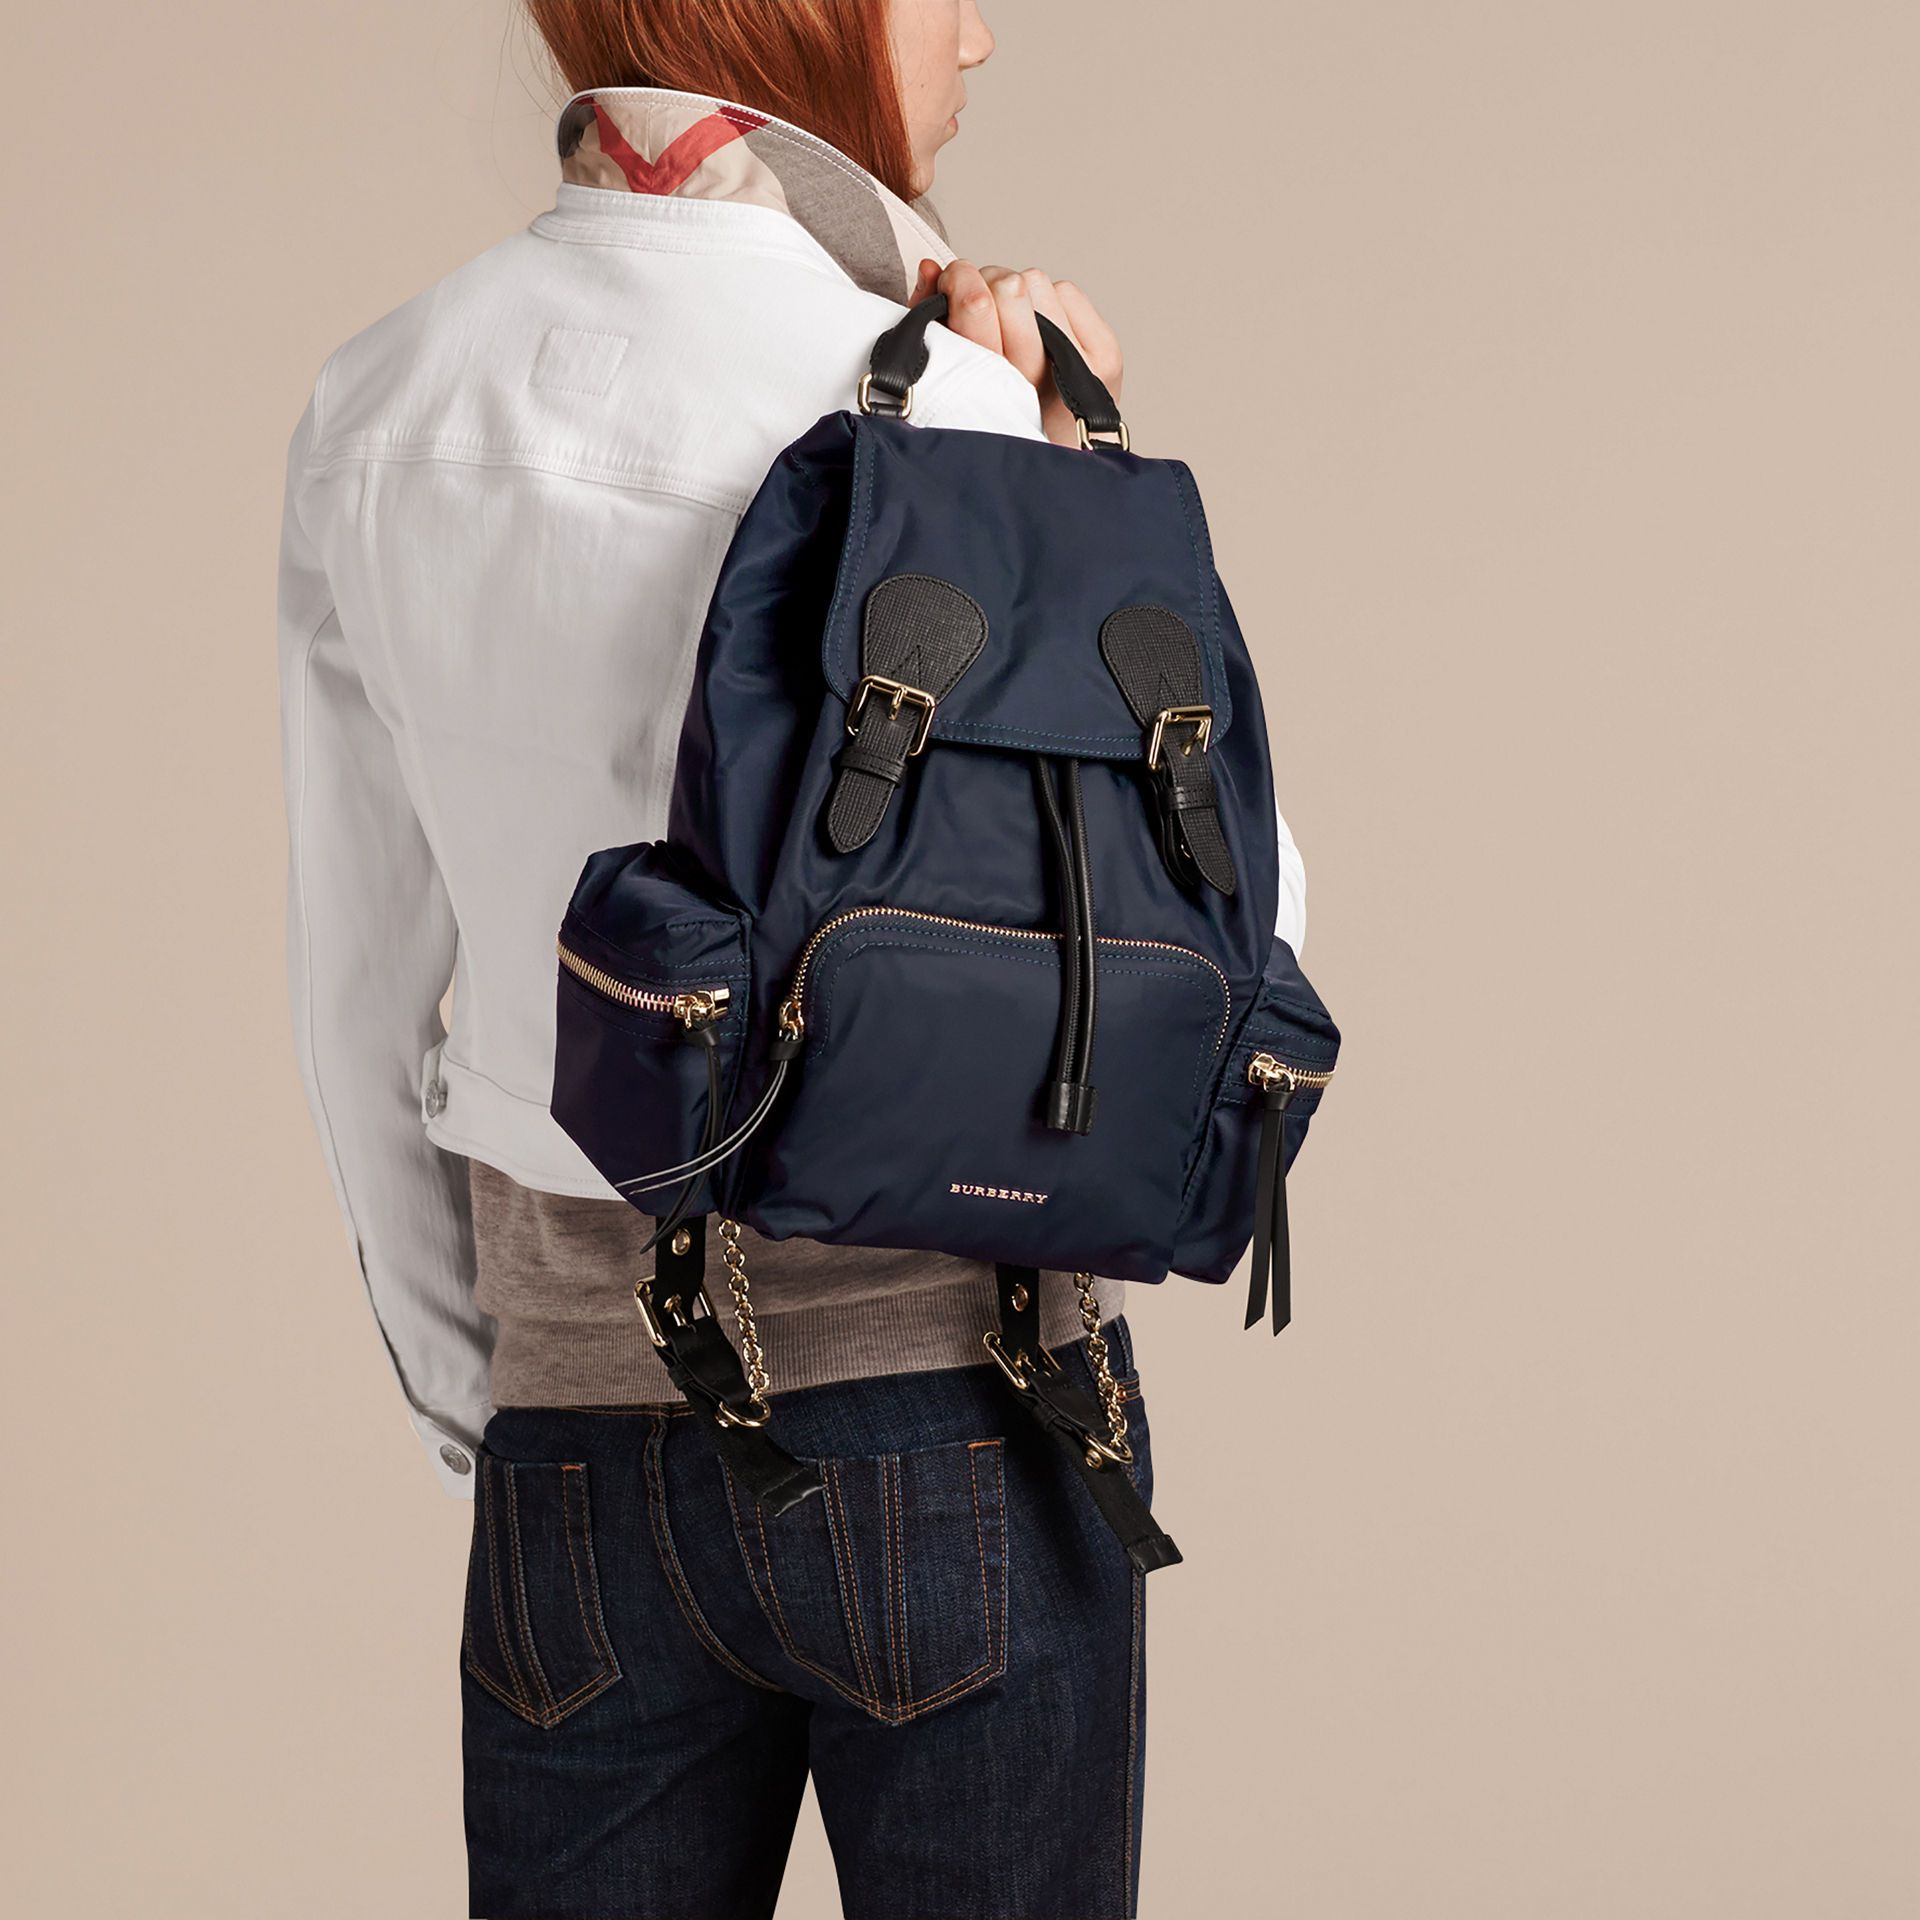 923fc5de9f0 The Medium Rucksack in Technical Nylon and Leather Ink Blue   Burberry